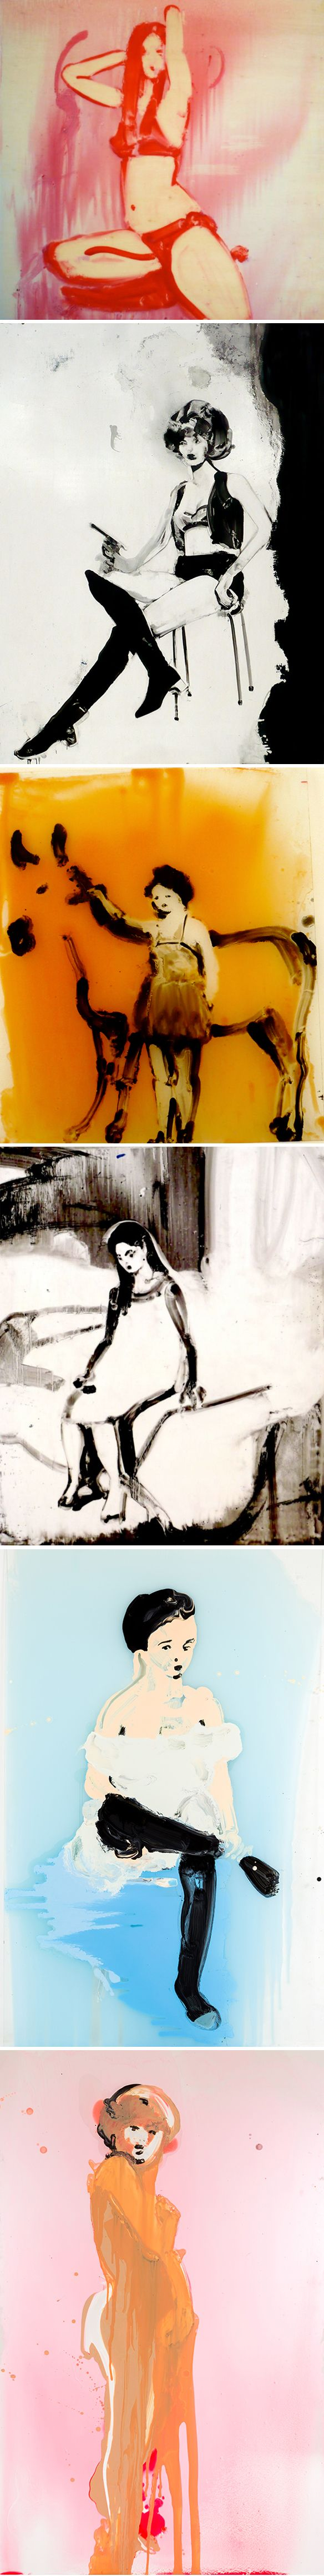 Paintings by Ilona Szalay (some on canvas, some on GLASS)